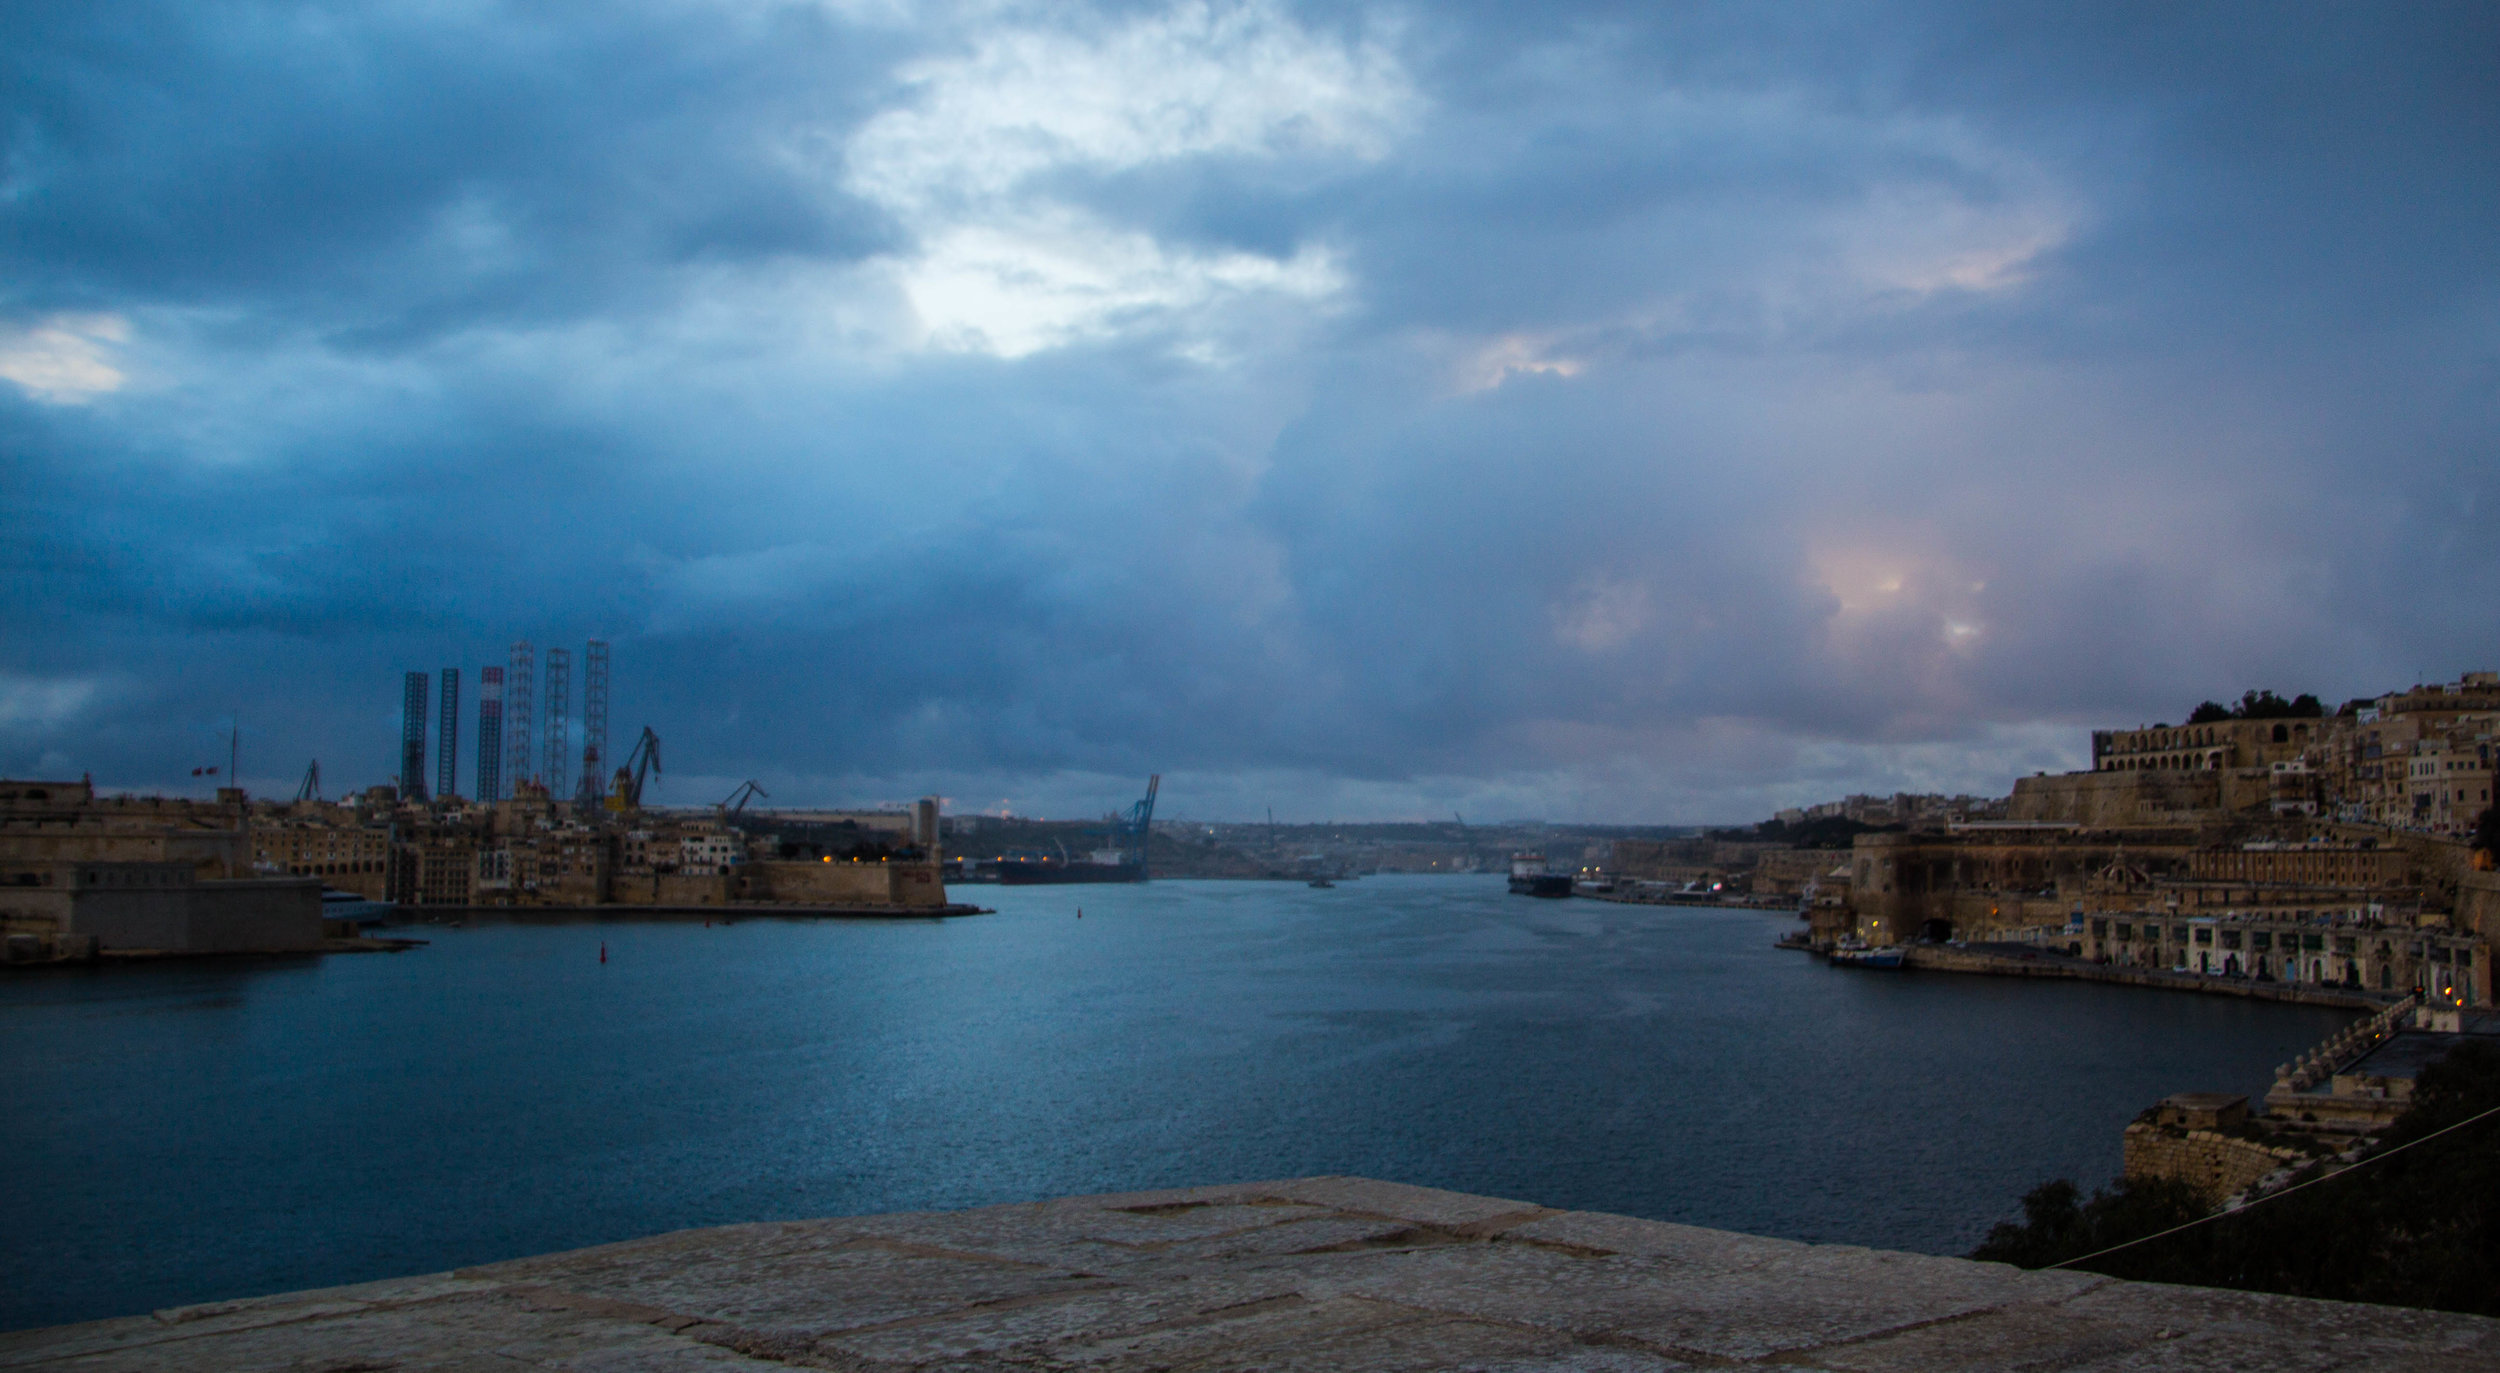 valletta-malta-clouds-rain-streets-photography-57.jpg